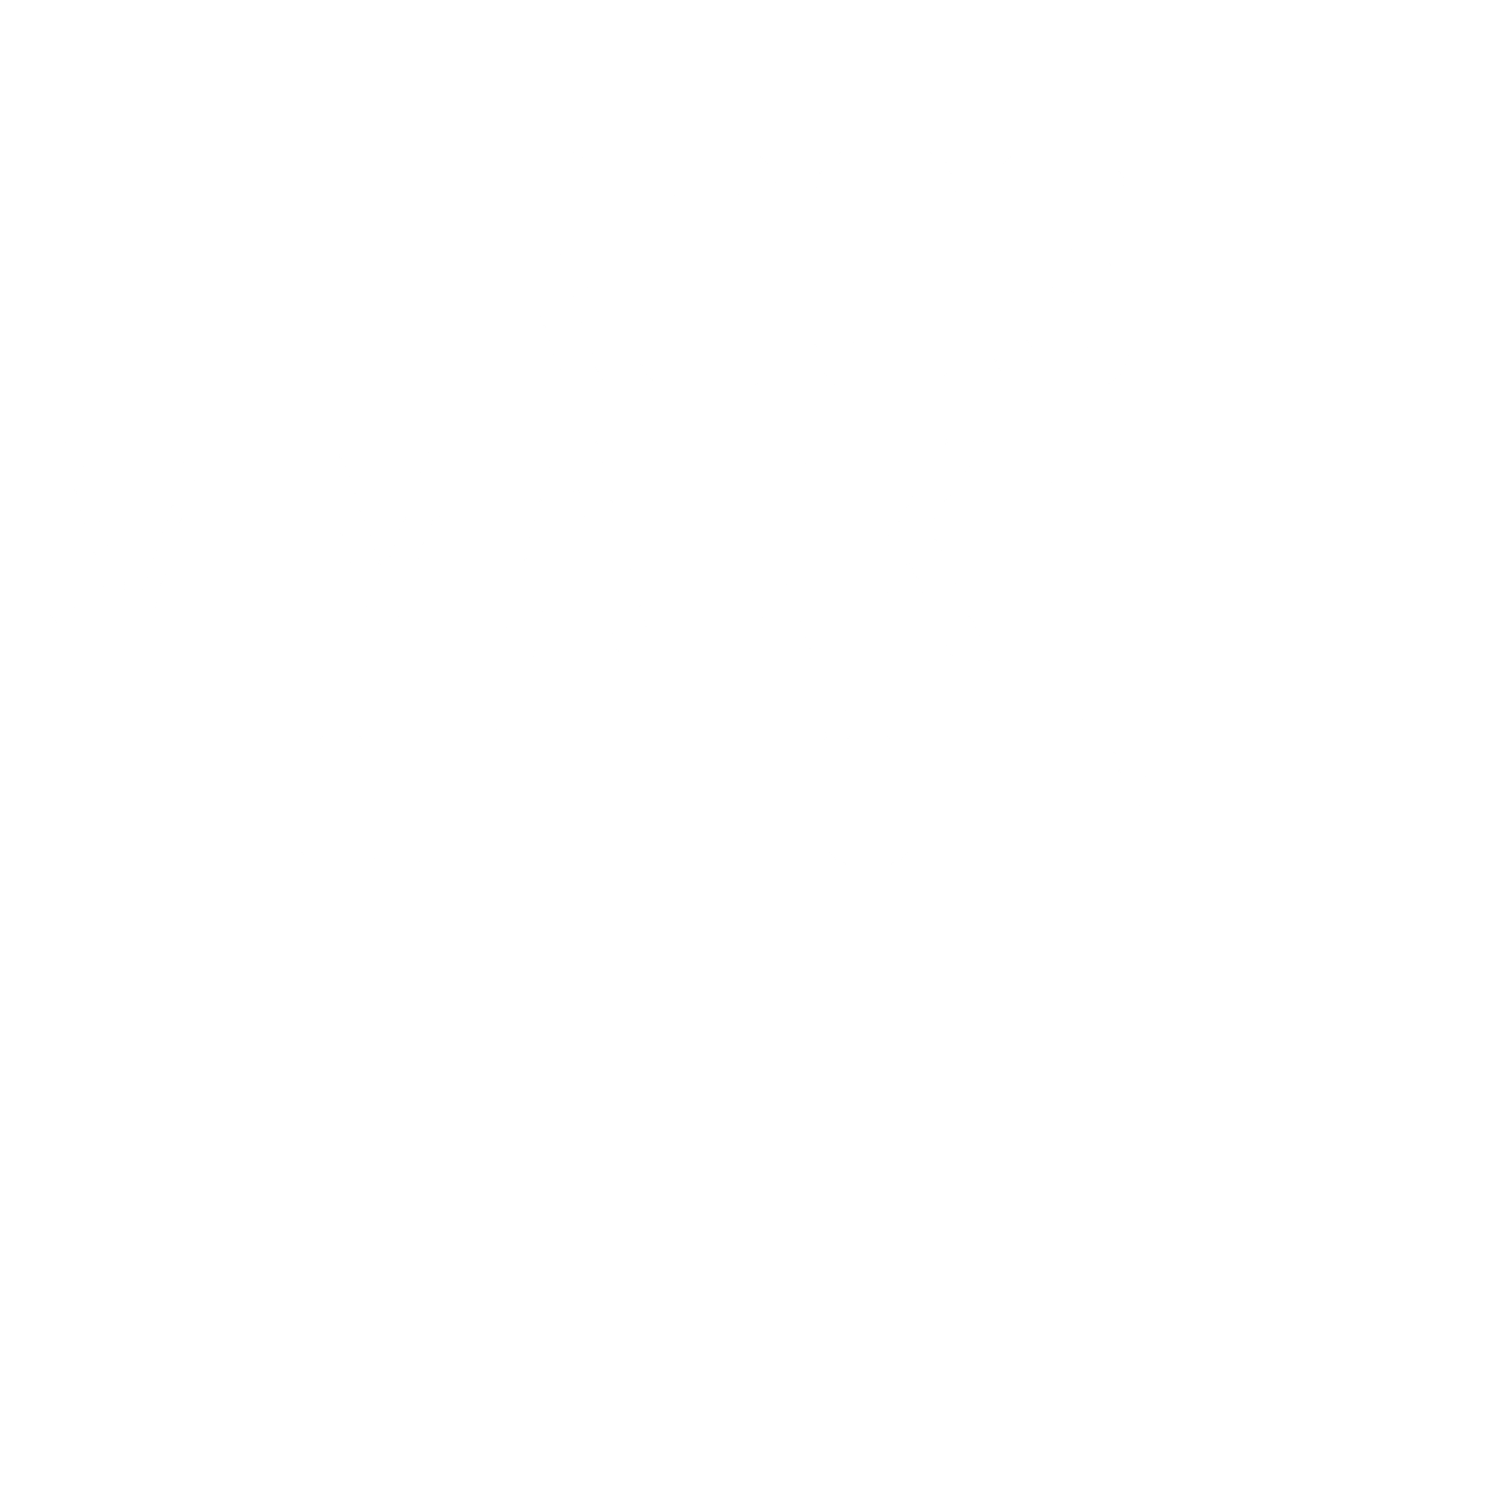 Troost Market Collective